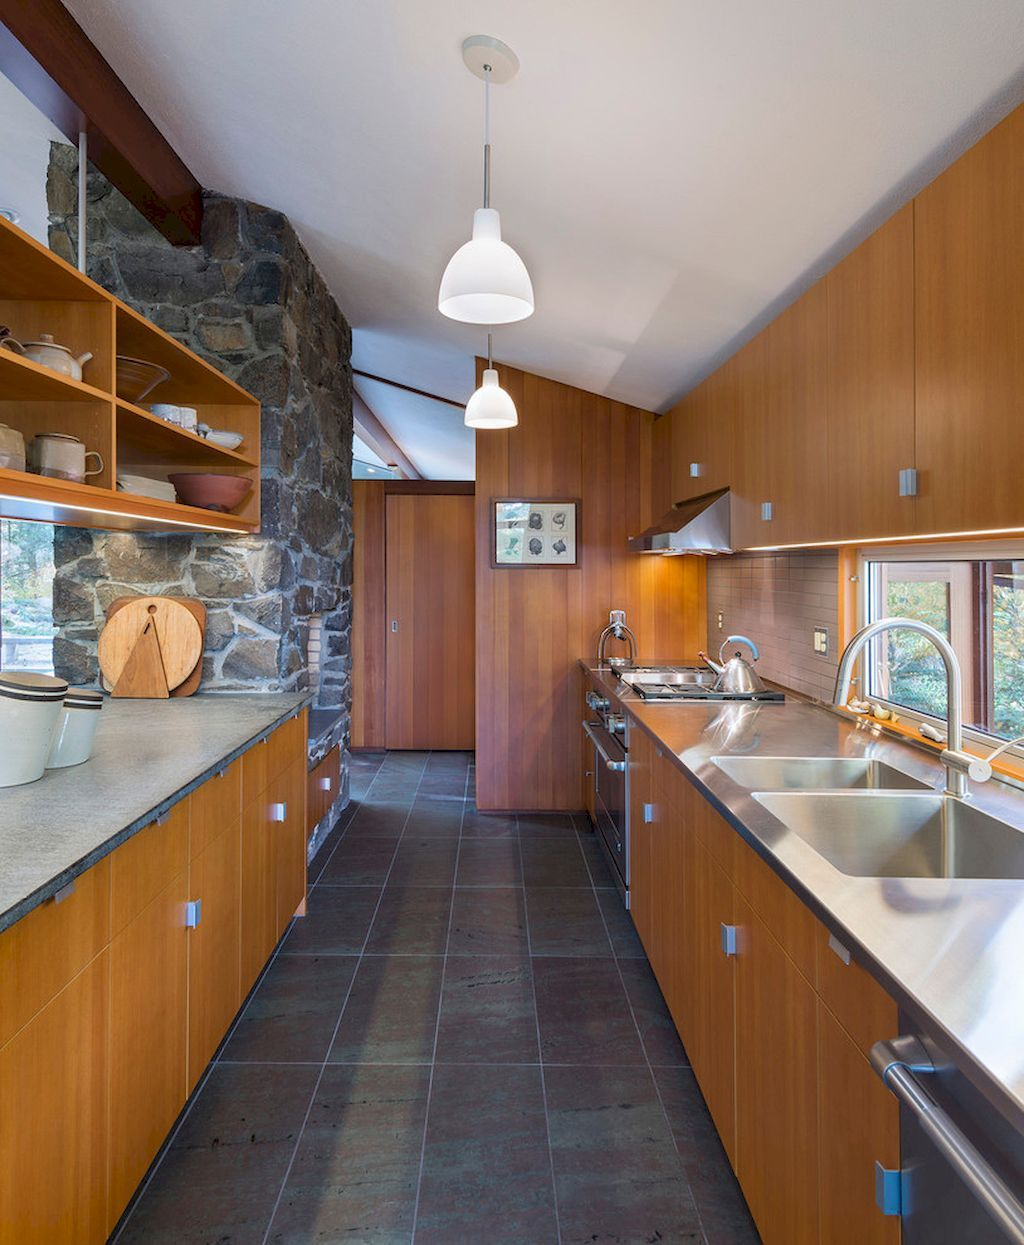 Awesome charming mid century kitchen design ideas